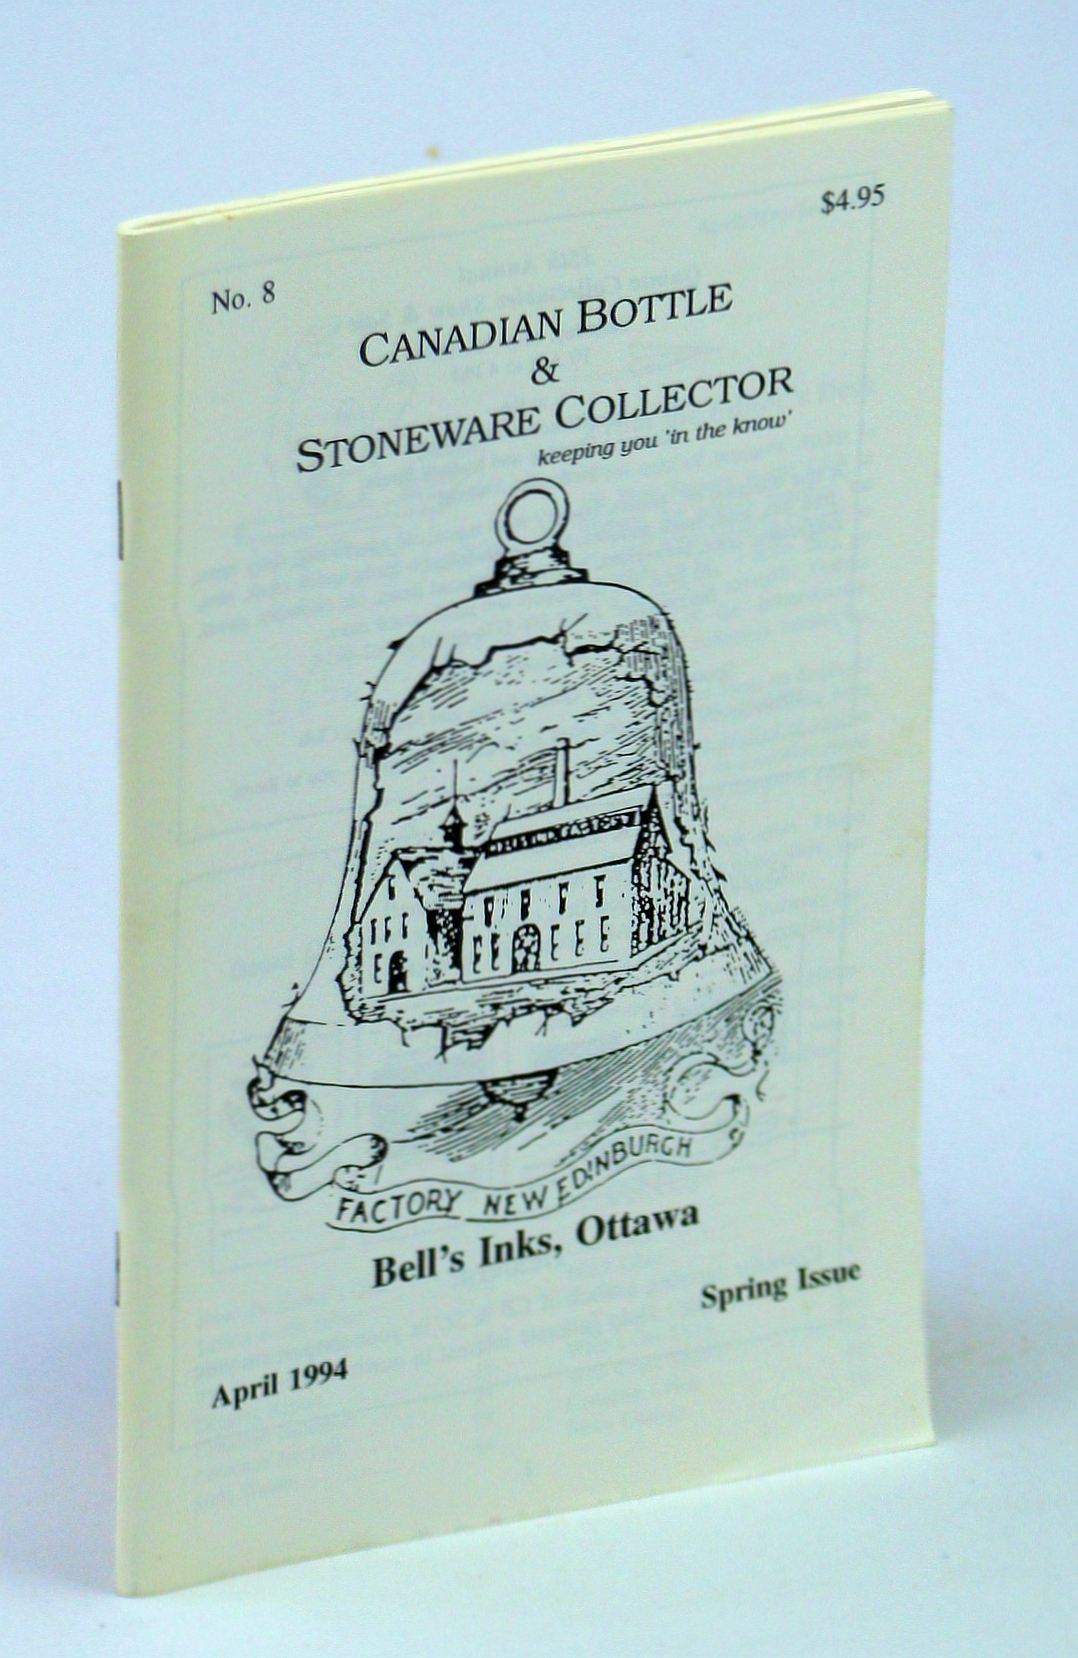 Image for Canadian Bottle & Stoneware Collector, No. 8, April 1994 - Spring Issue